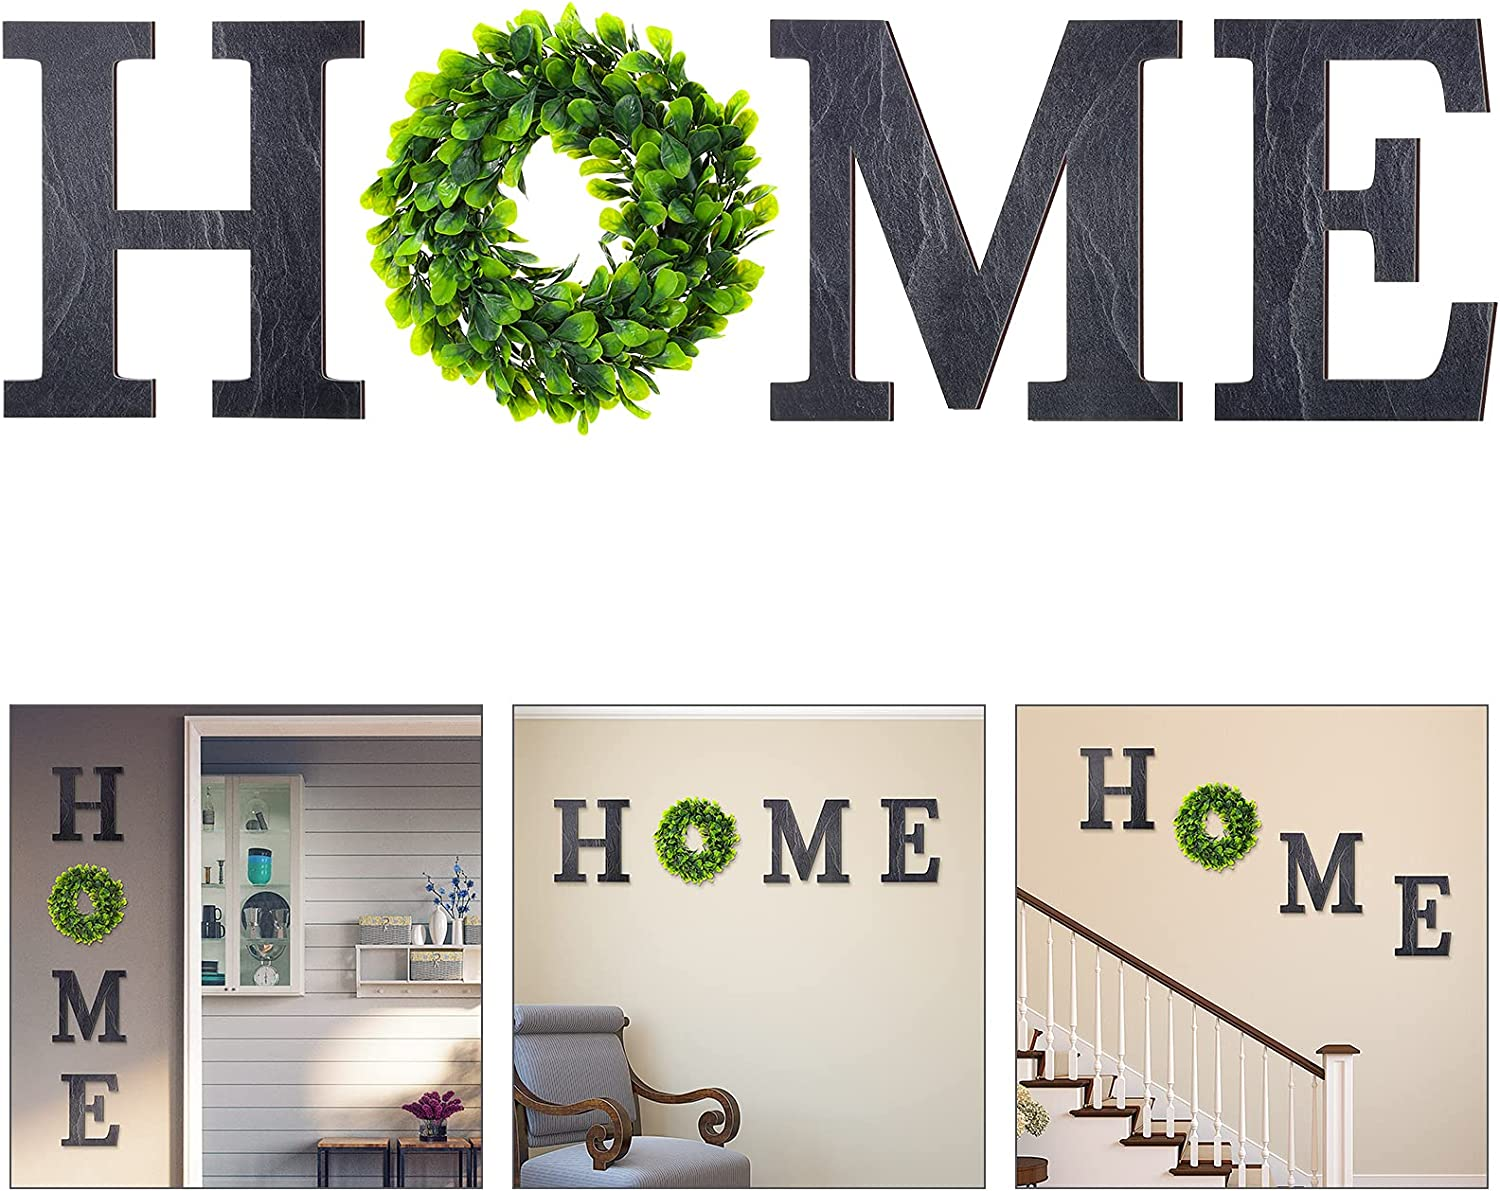 Wooden Home Sign with Green Wreath Flower, Wall Hanging Decor 11.8 Inch Home Decorative Sign Rustic Wooden Letters Decor for Living Room Kitchen Entry Way Housewarming Decoration